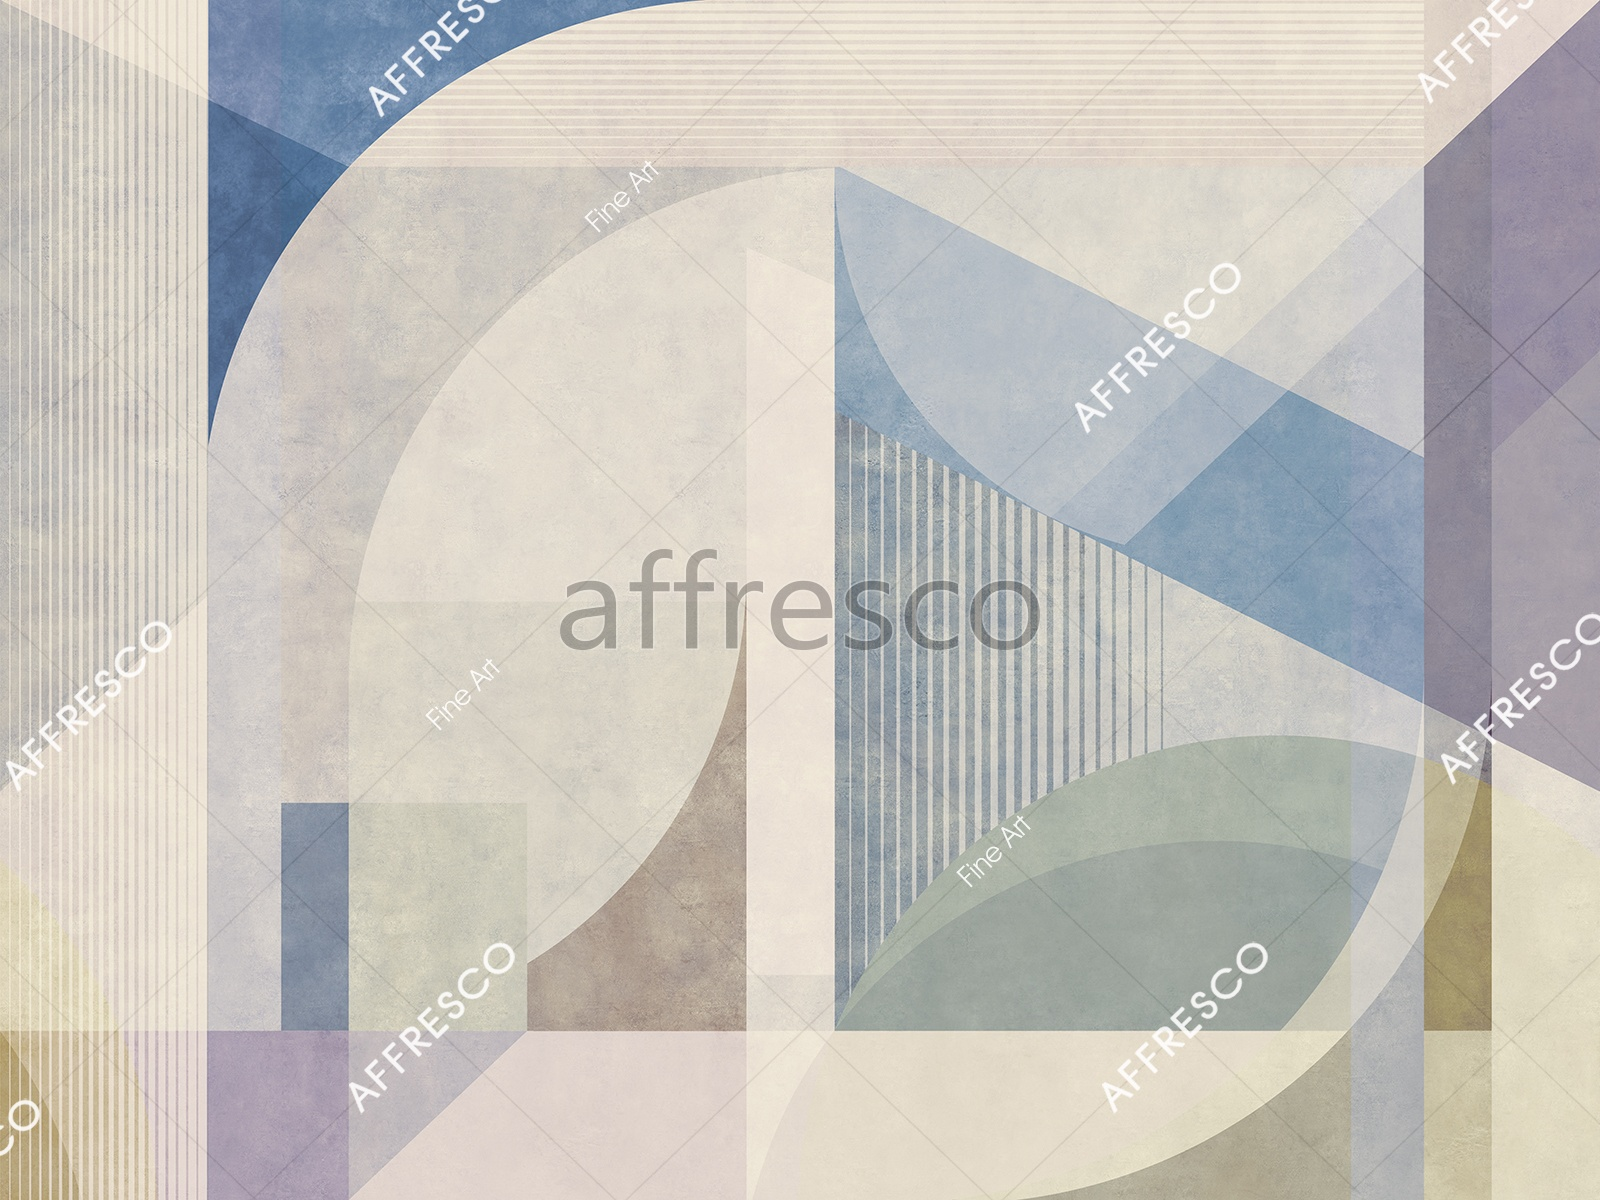 RE882-COL2 | Fine Art | Affresco Factory